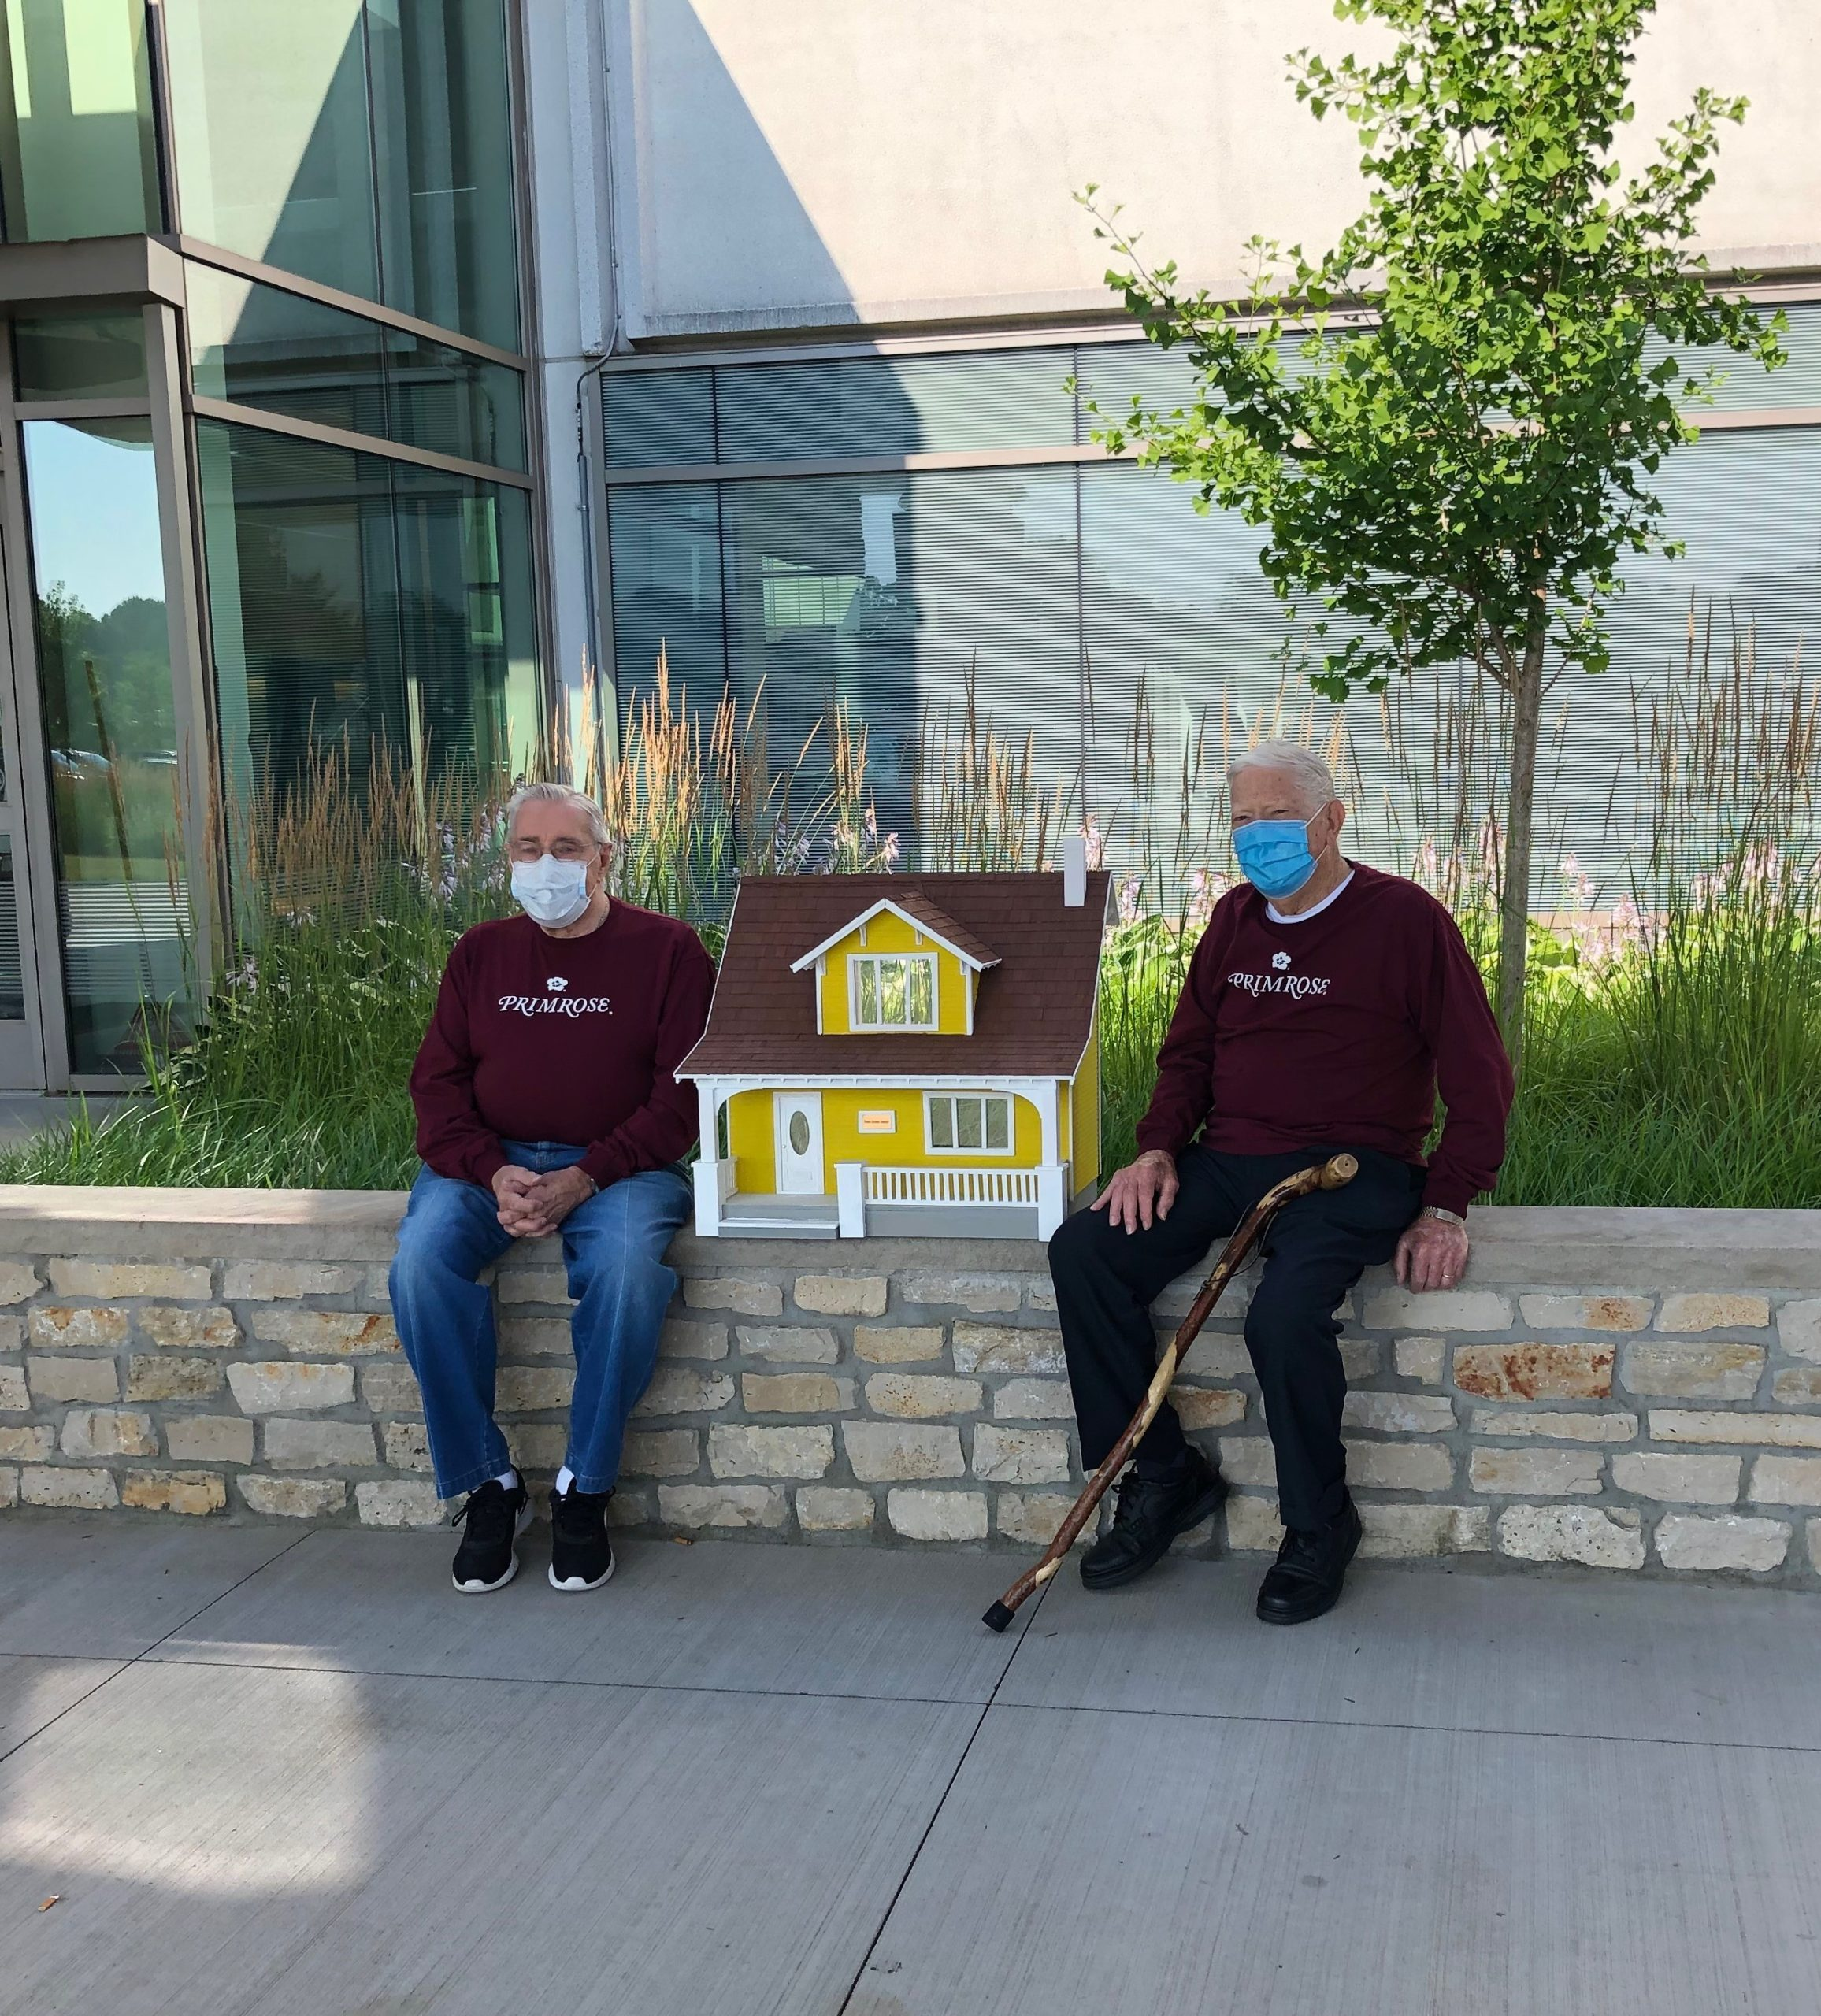 Terry and George donated the doll house they built to a local hospital.